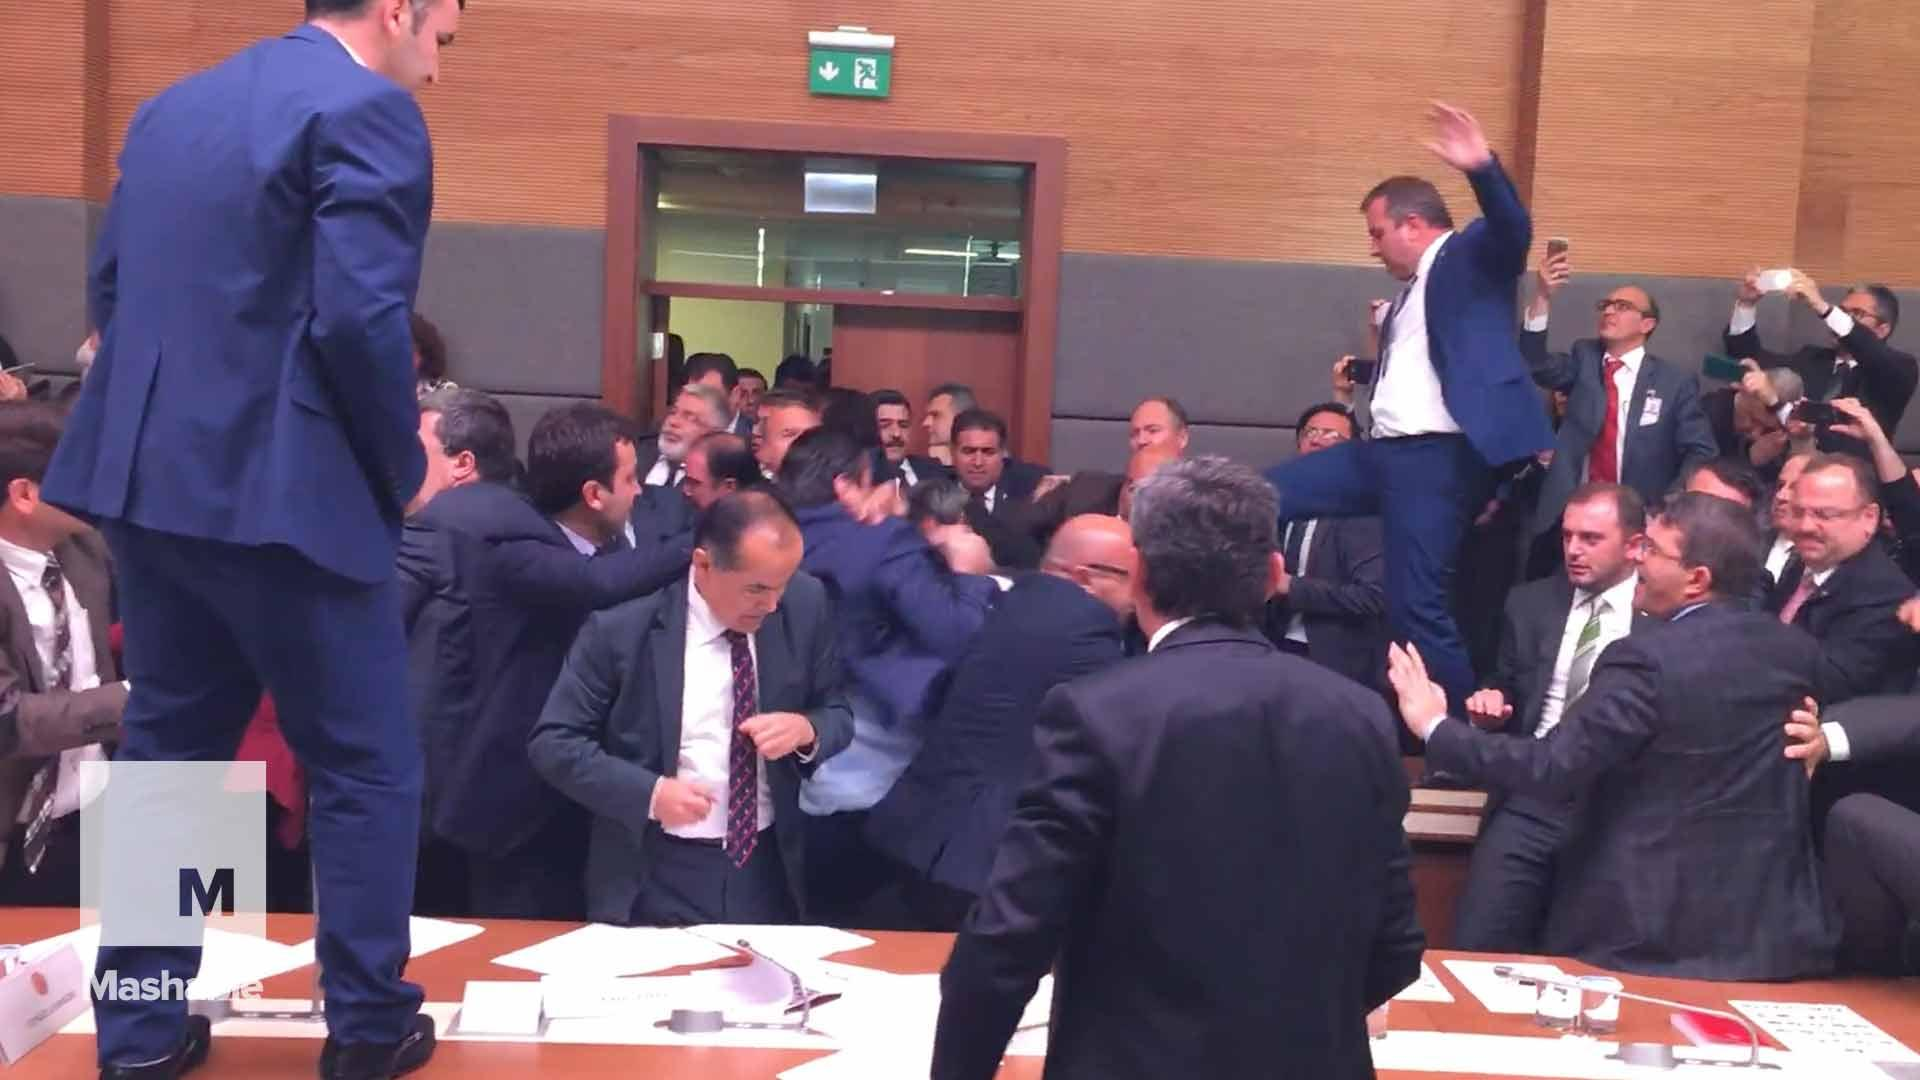 Mass brawl erupts in Turkish parliament over constitutional amendment